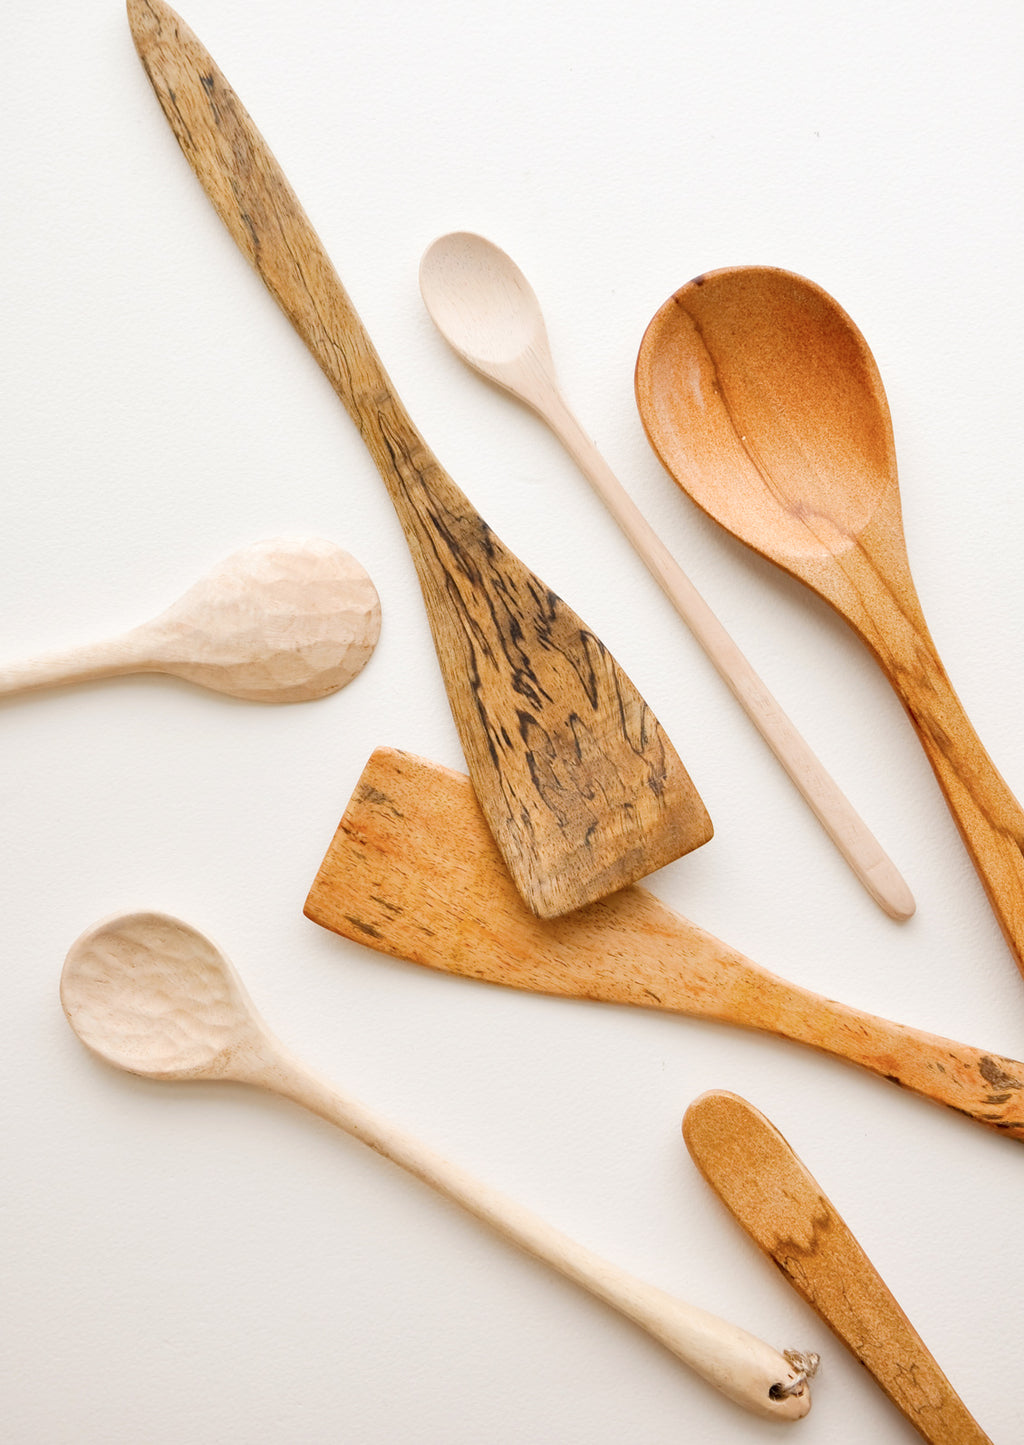 1: Wooden spoons of different colors, shapes, and sizes displayed in a haphazard d fashion.